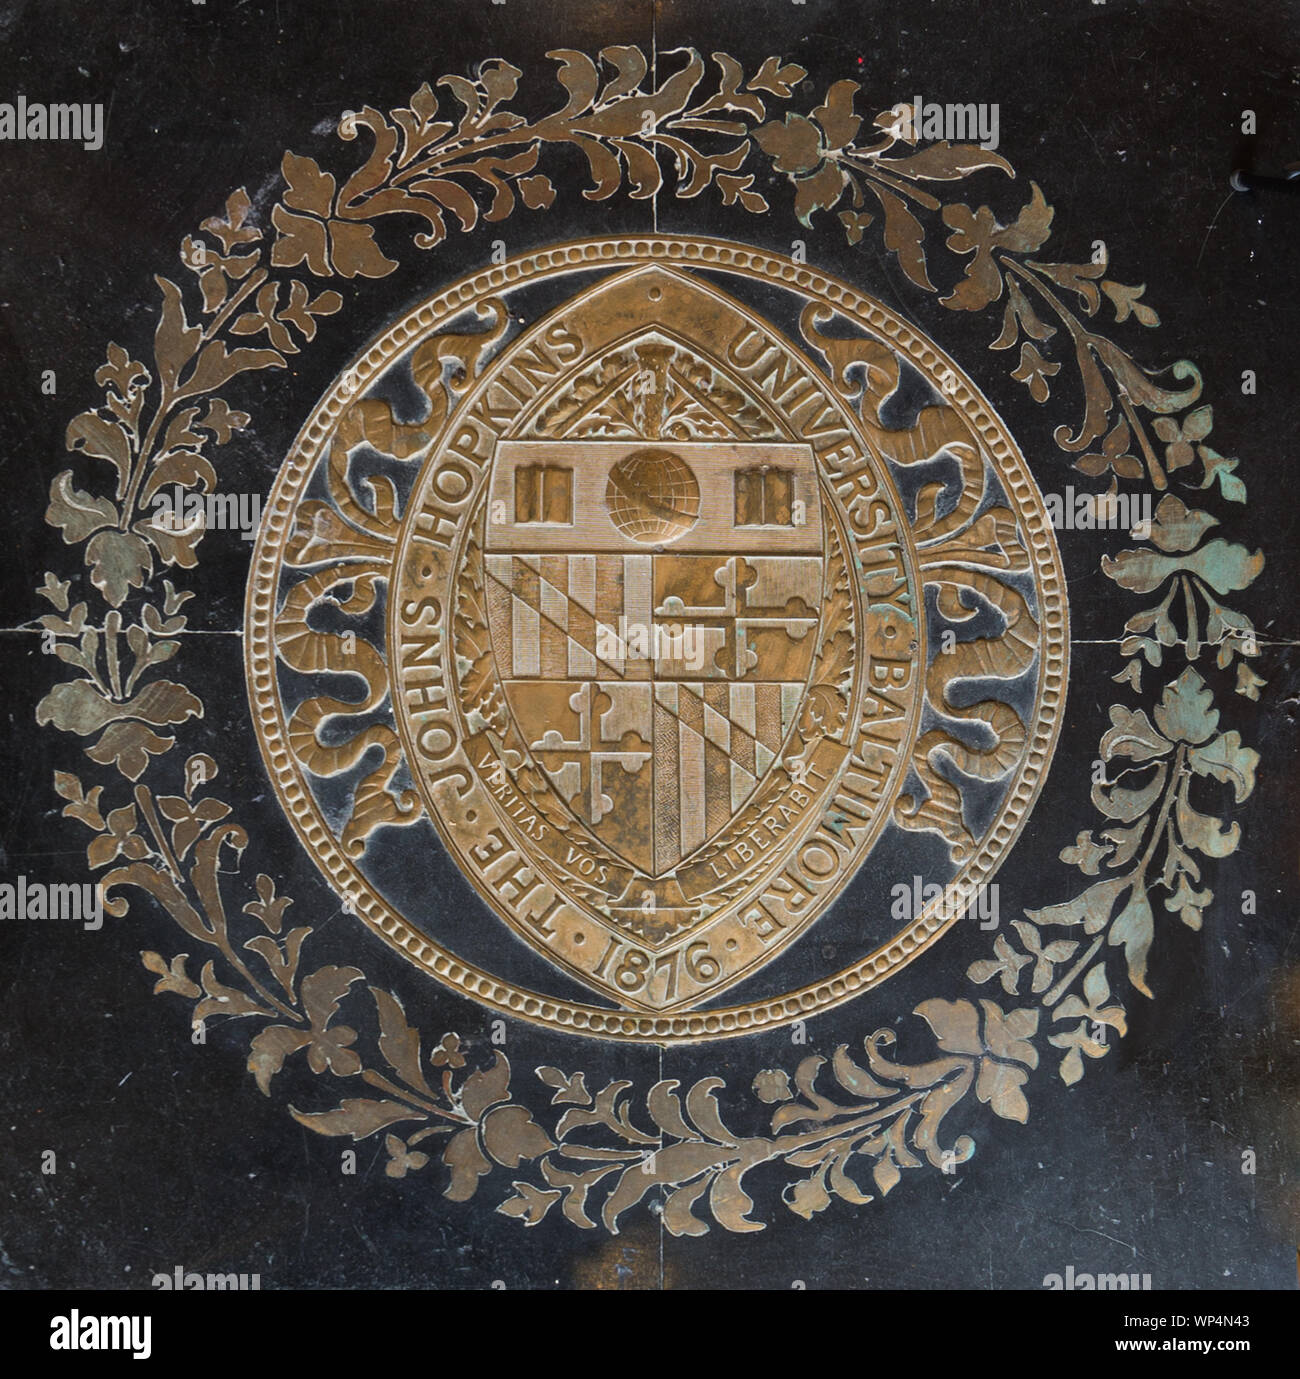 Johns Hopkins University seal on the floor of Gilman Hall, on the Johns Hopkins University campus in Baltimore, Maryland Stock Photo